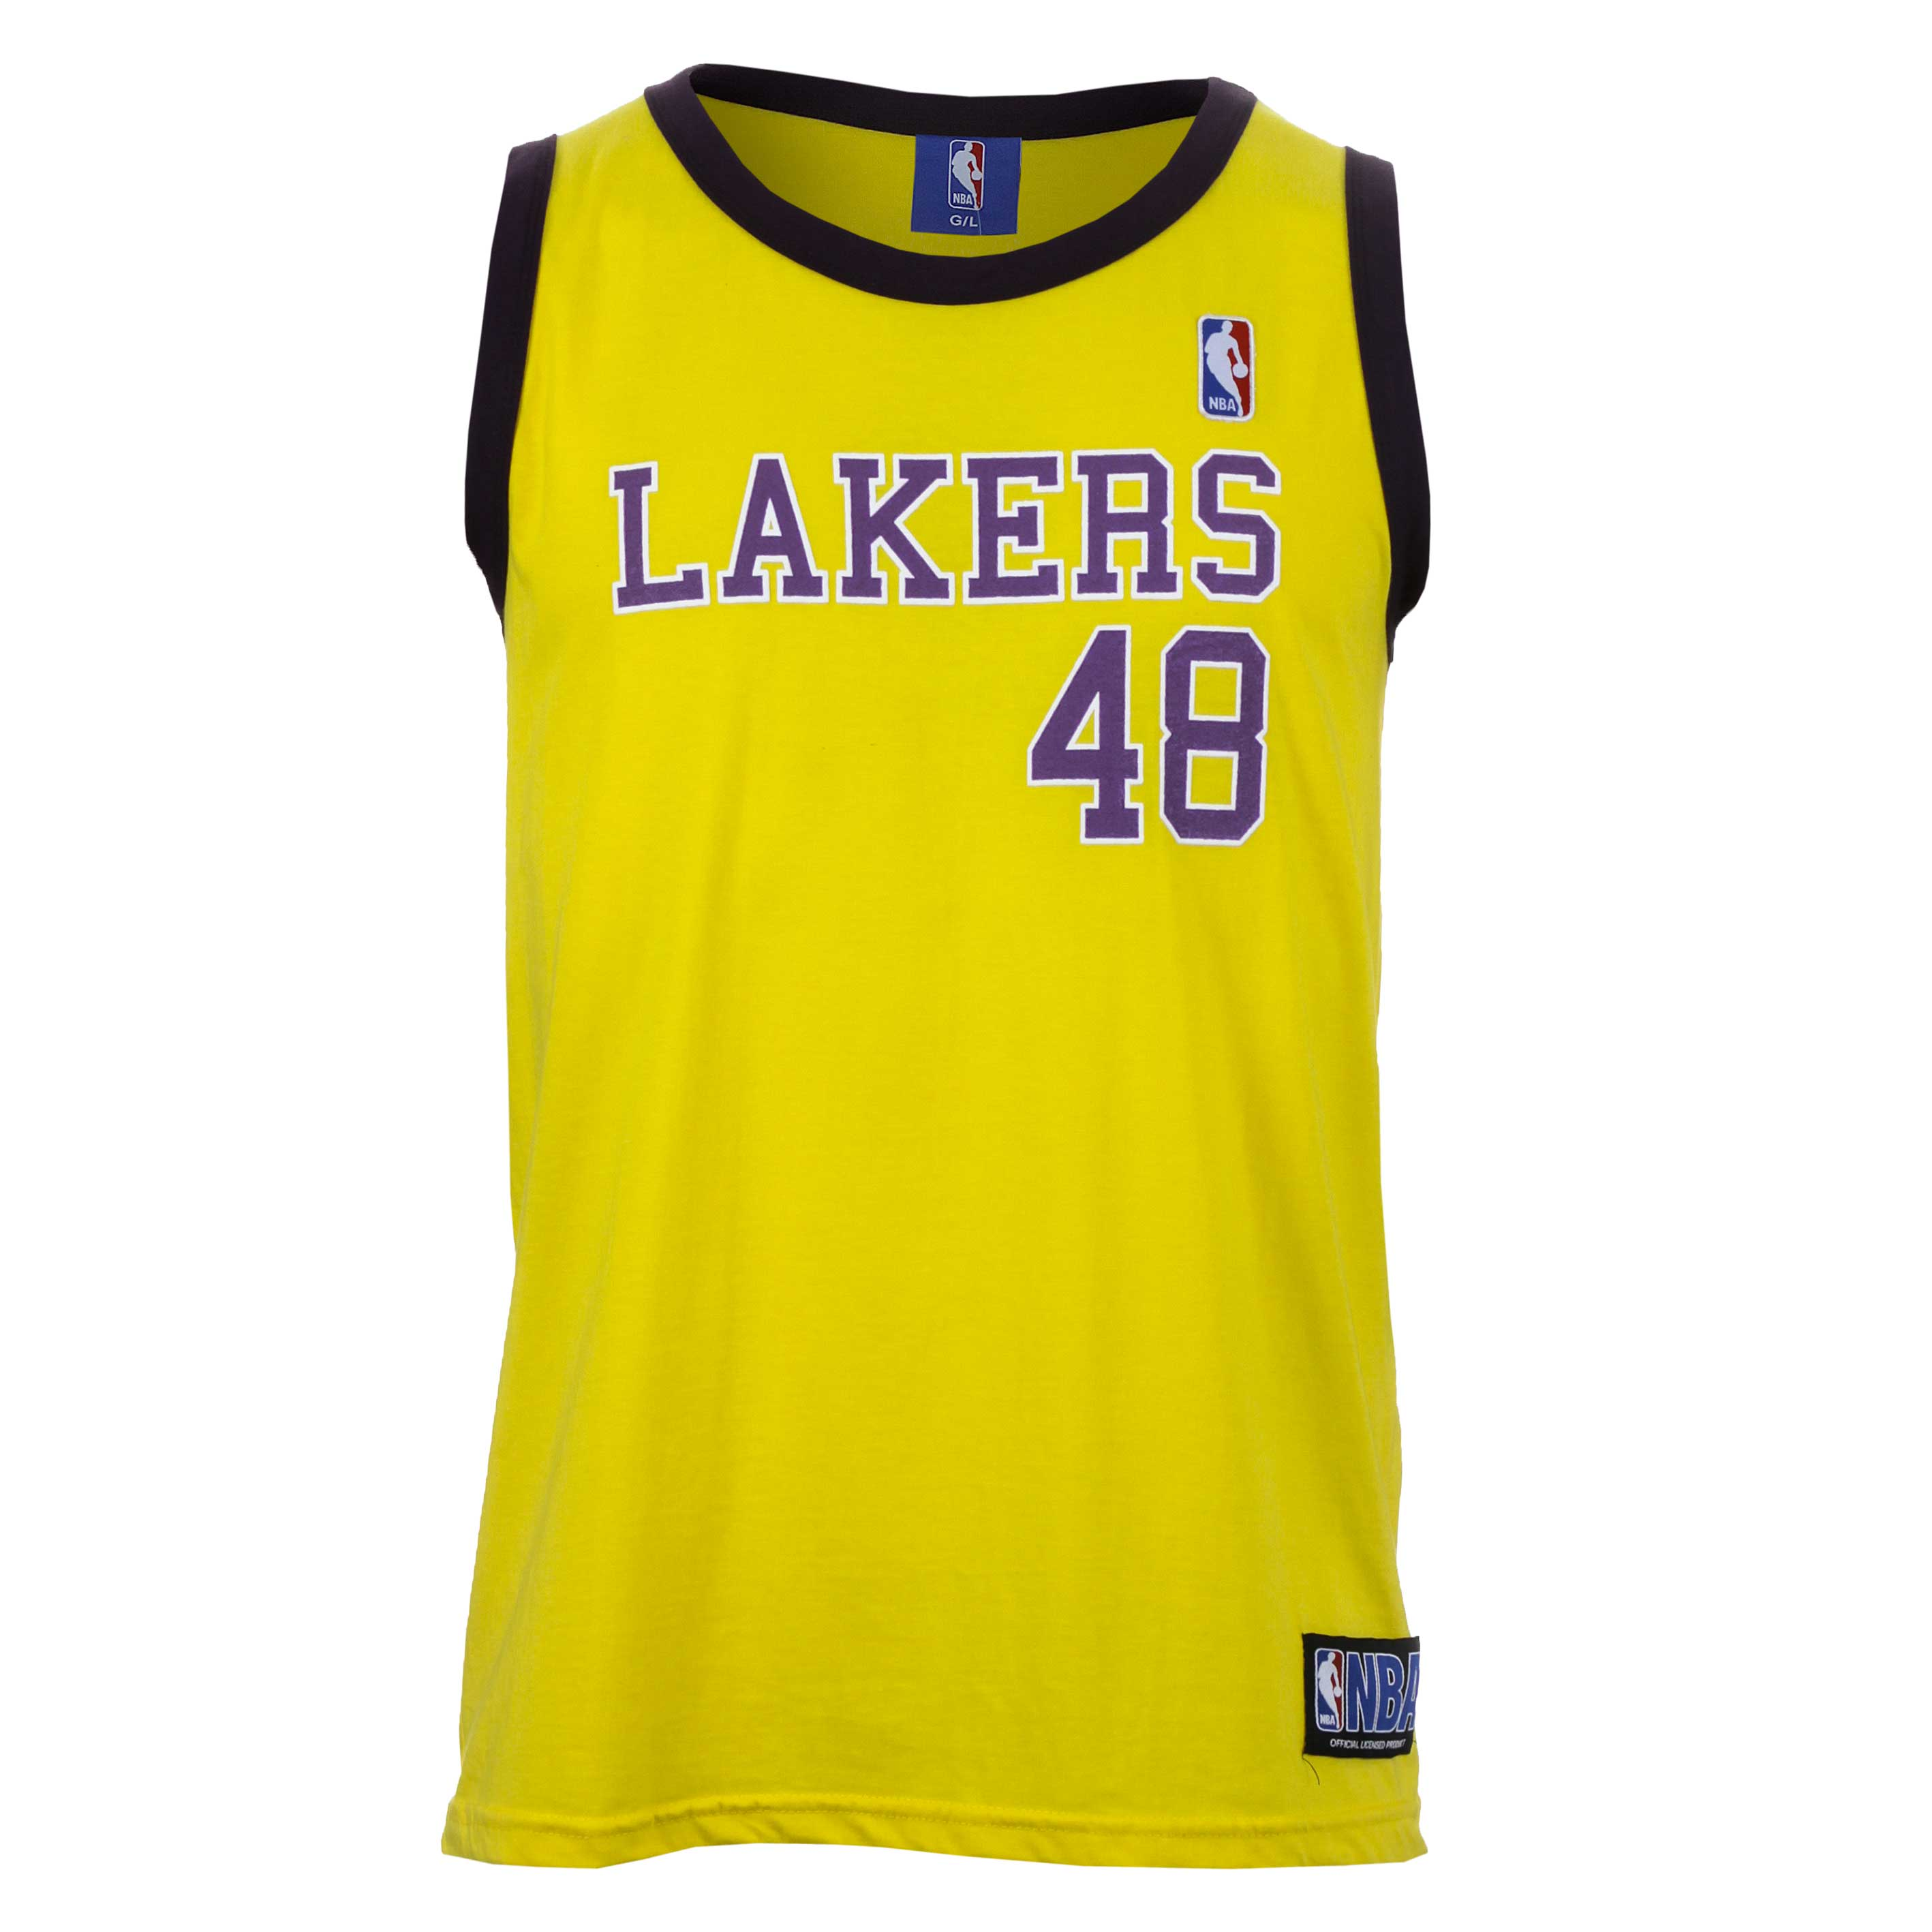 Regata Masc. Spr Nba Retro Lakers Esporte - Indoor - Amarelo